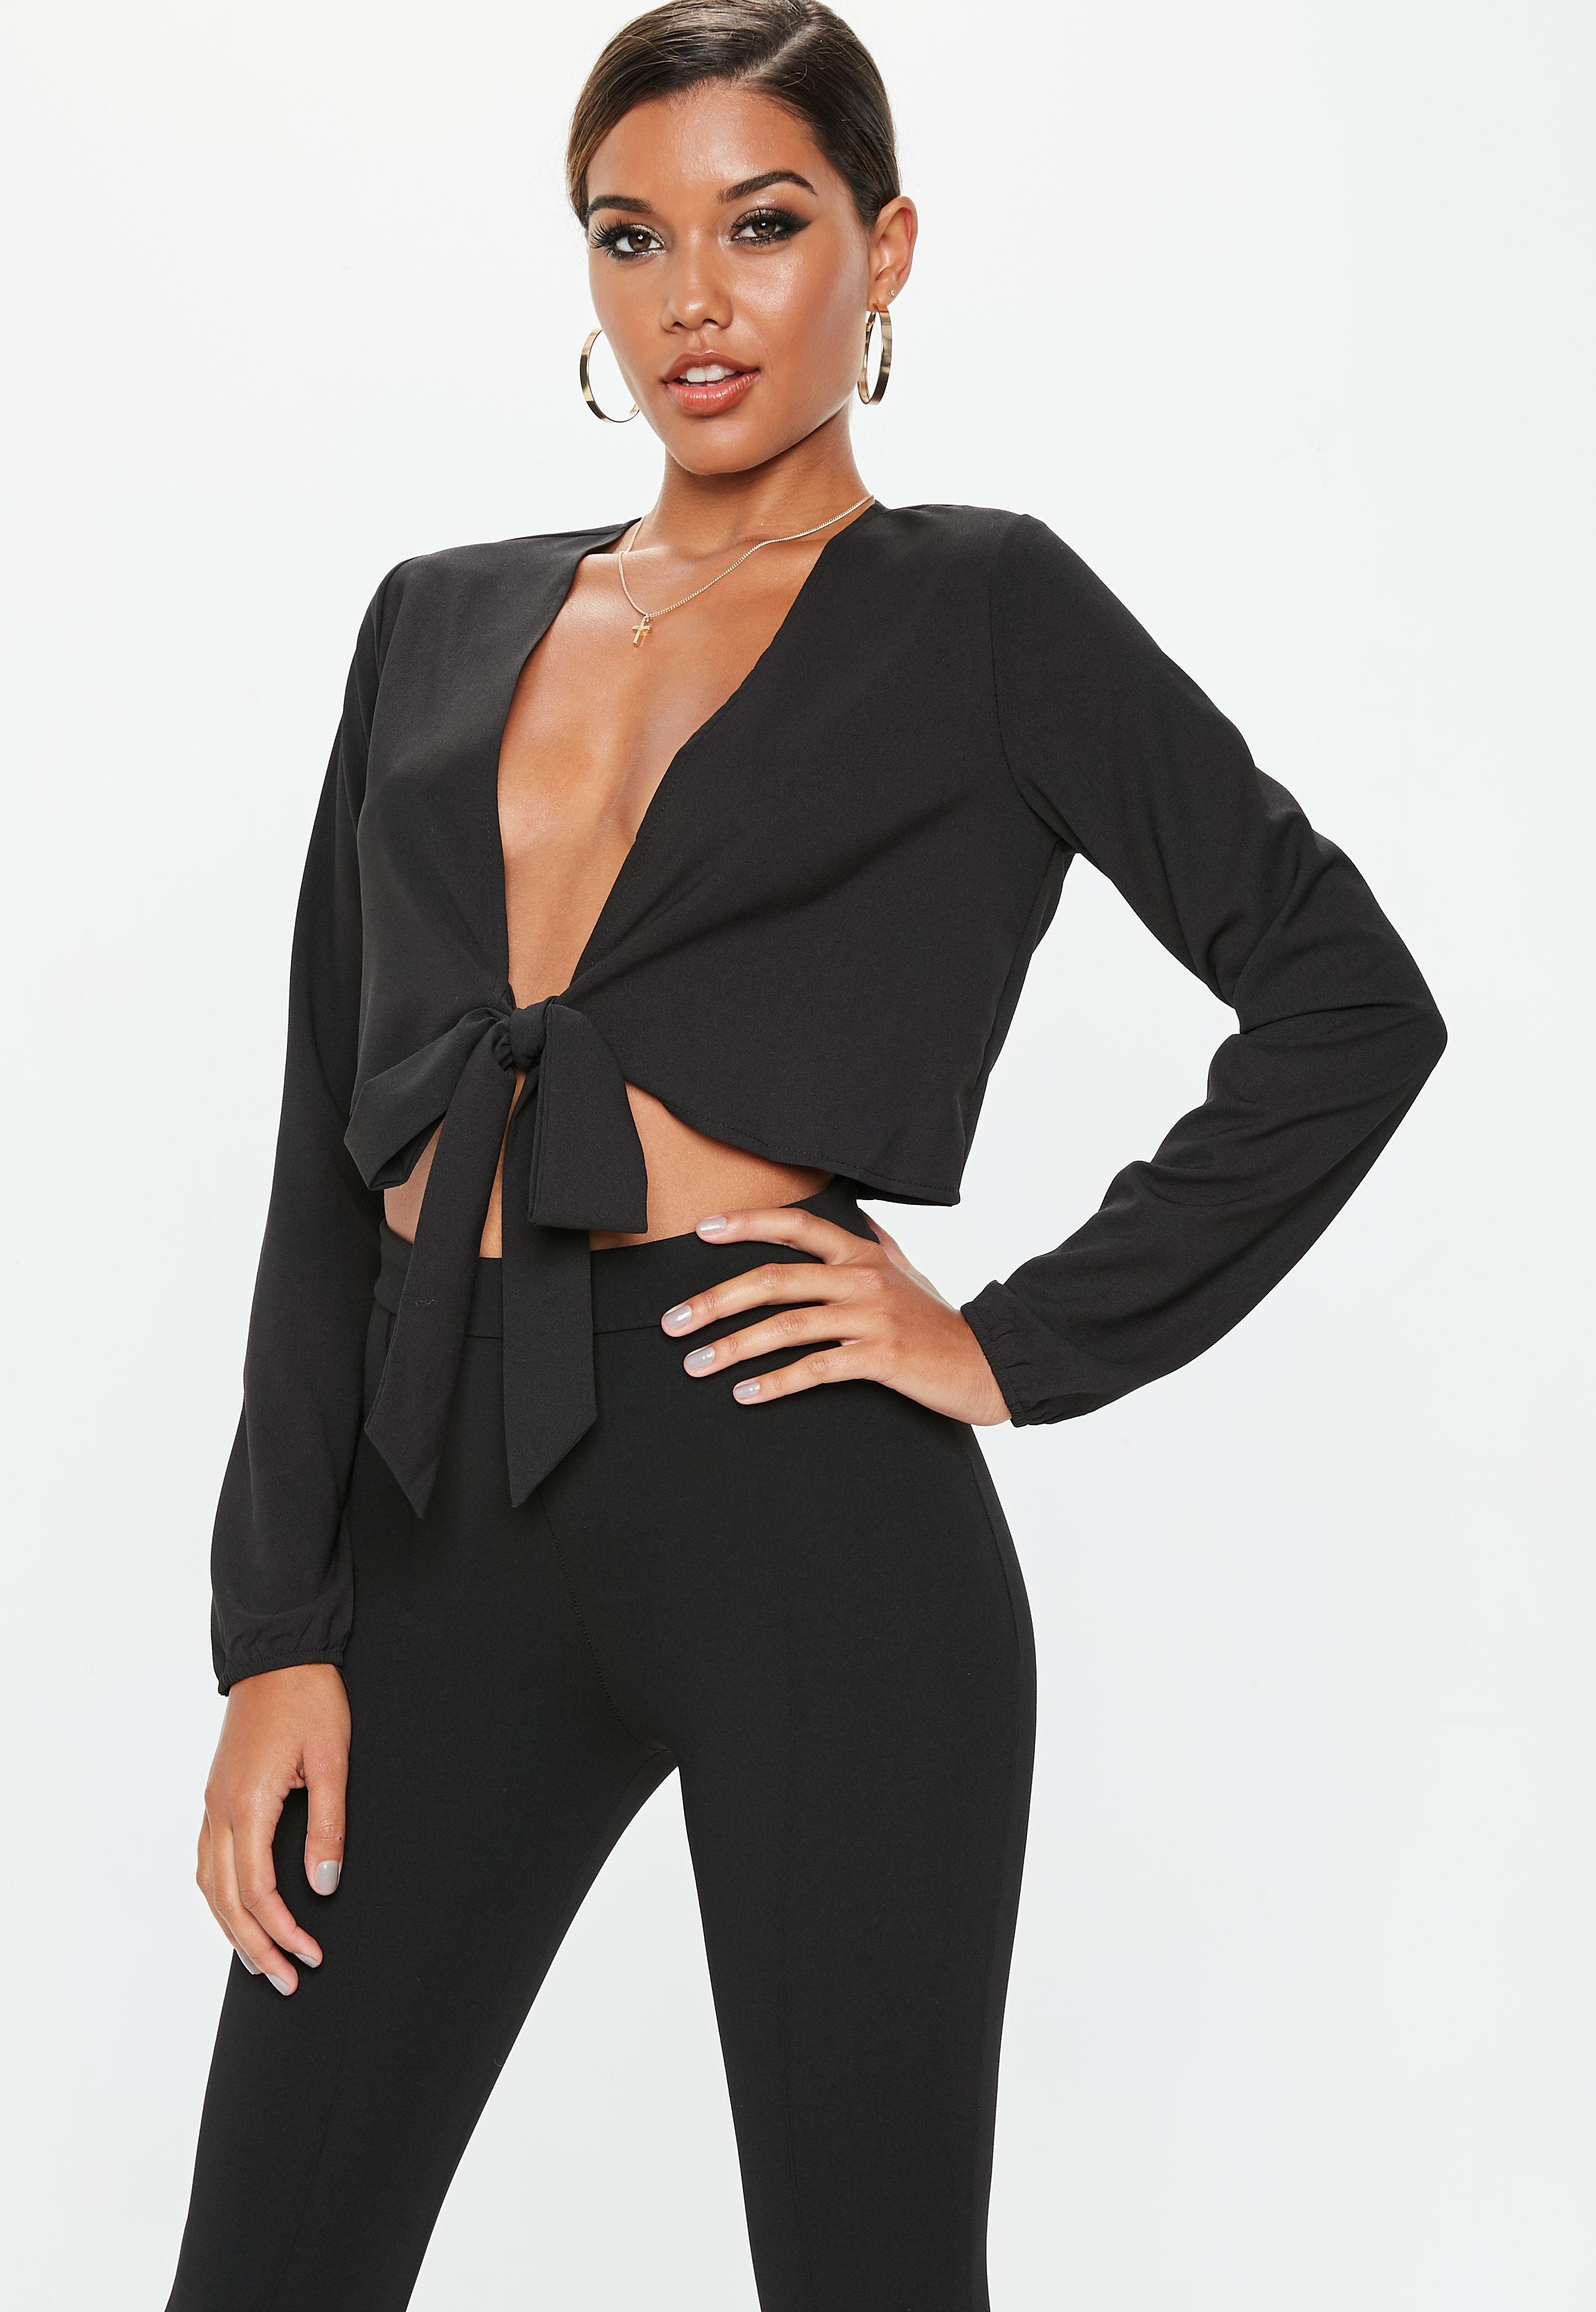 a7902f1cfe0 Black Tie Front Crop Top   Missguided